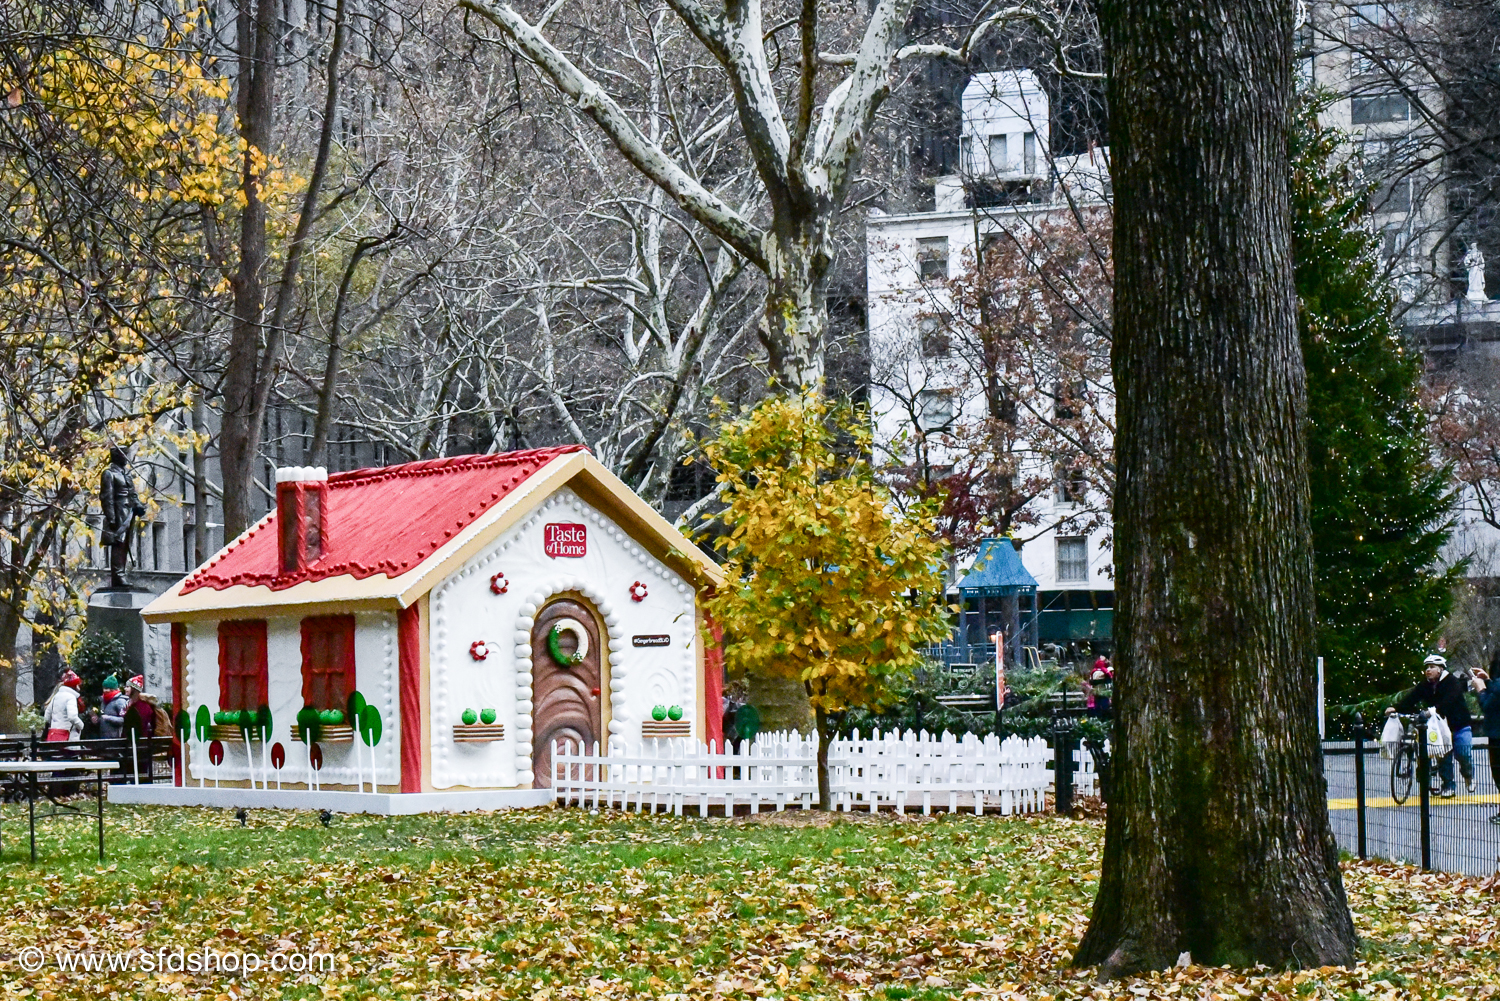 Taste of Home Gingerbread Blvd 2017 fabricated by SFDS-12.jpg